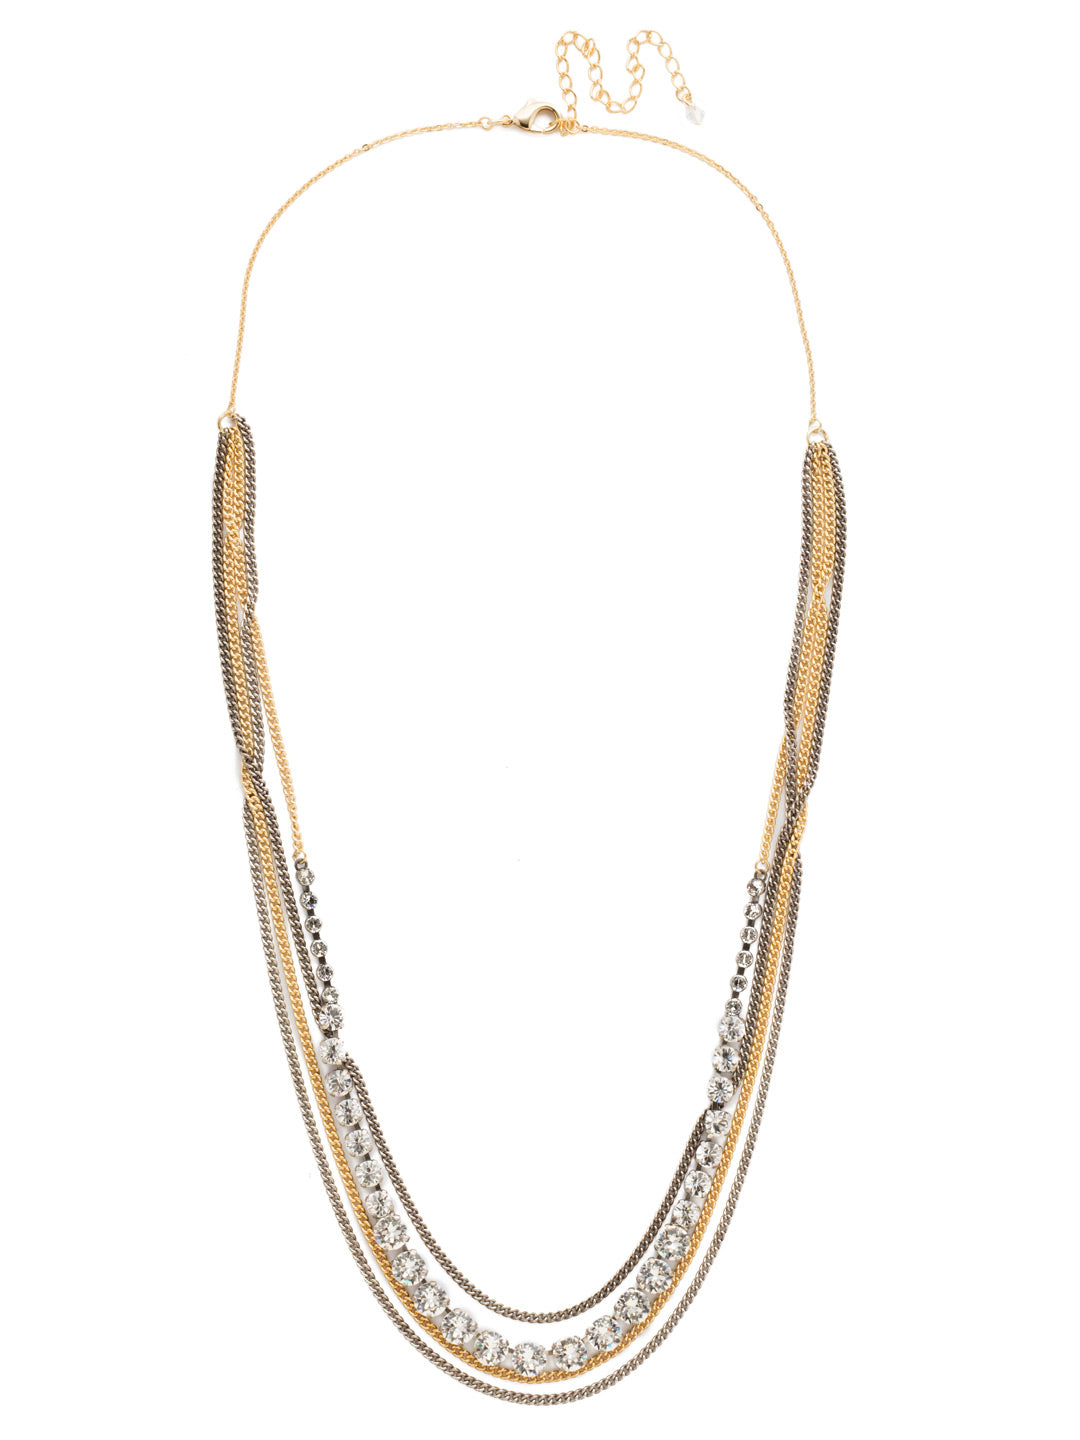 Layer It On Multi-Strand Layered Necklace - NCR73MXCRY